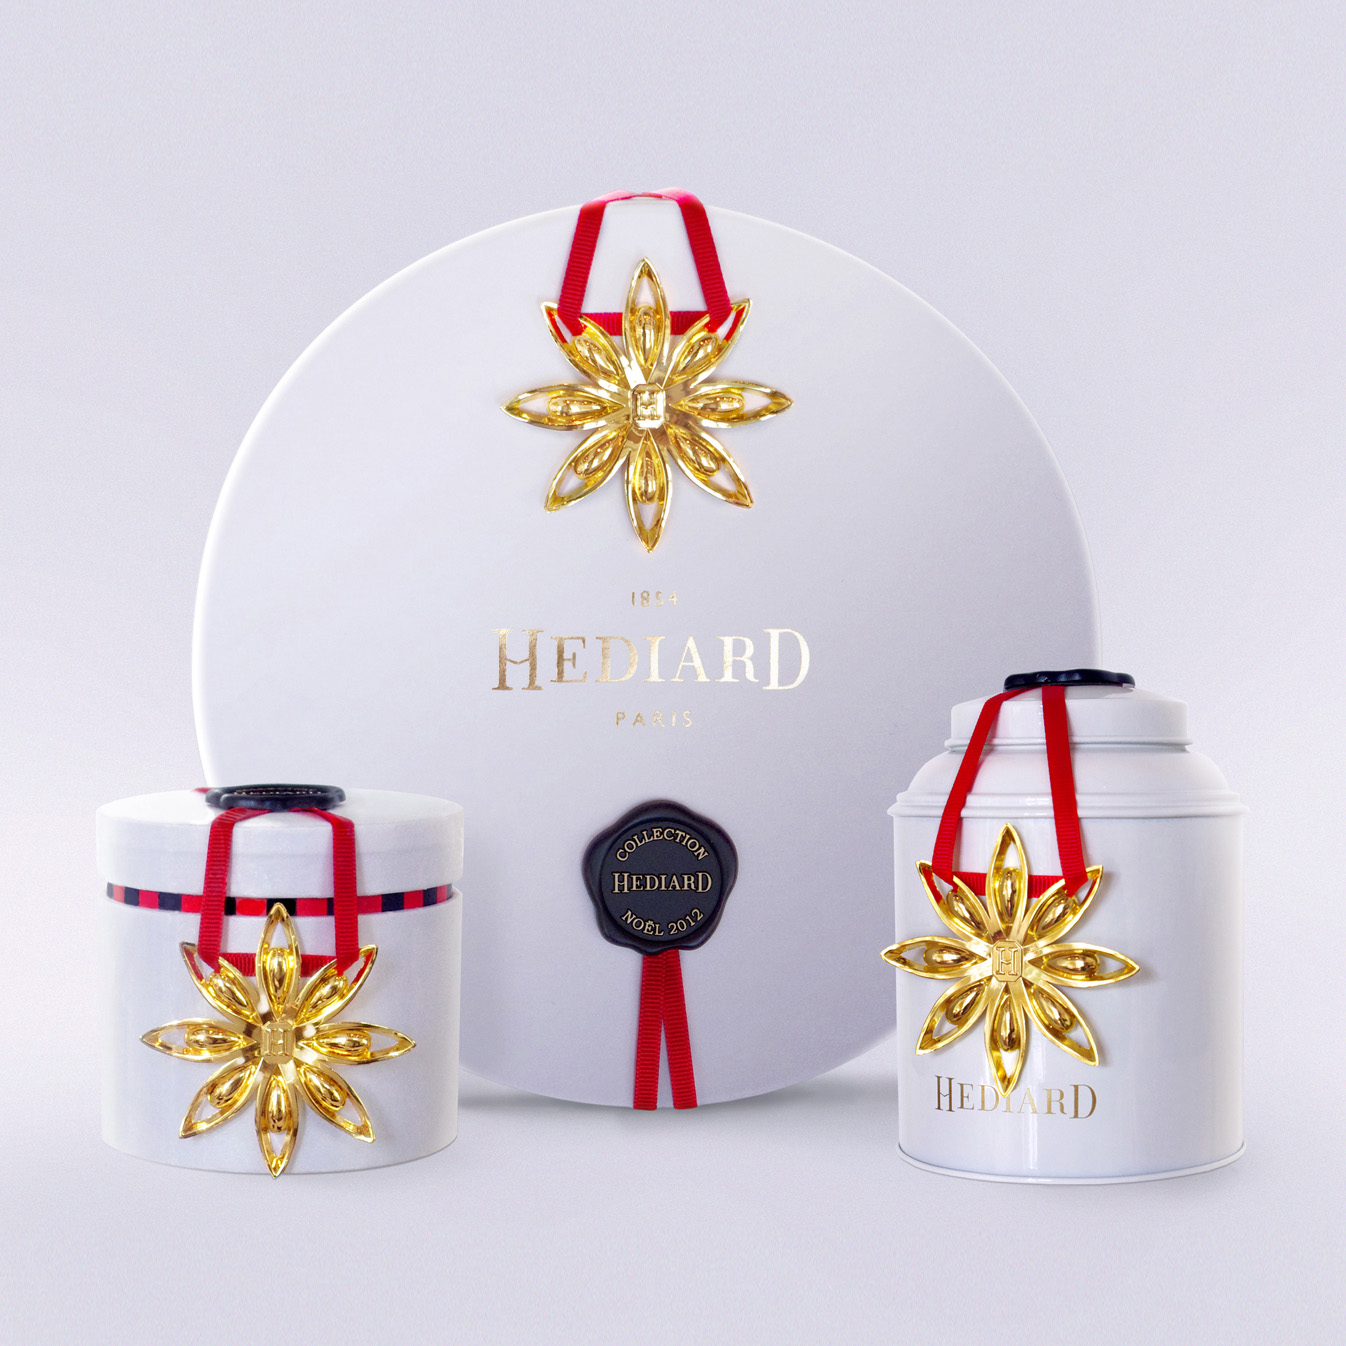 Star Anise Design and Christmas Packaging Collection by Delatour Design Paris